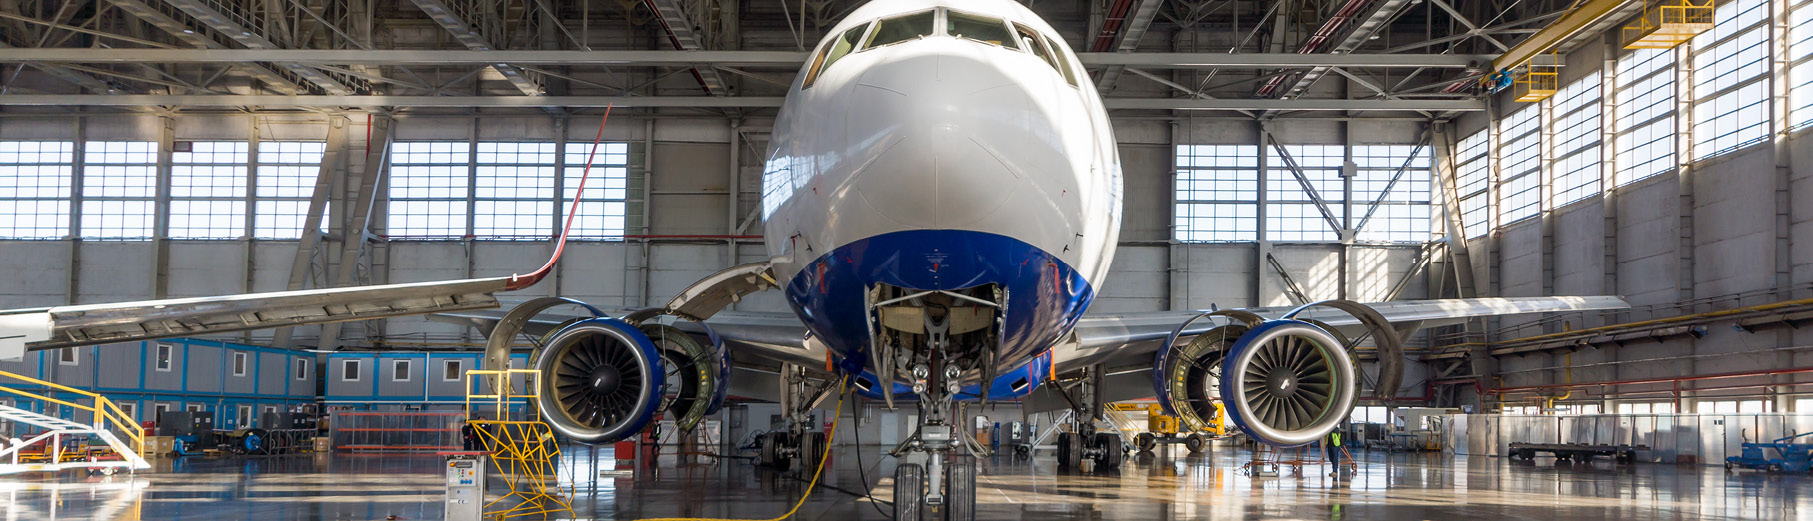 Henchman Products in the Aerospace Industry